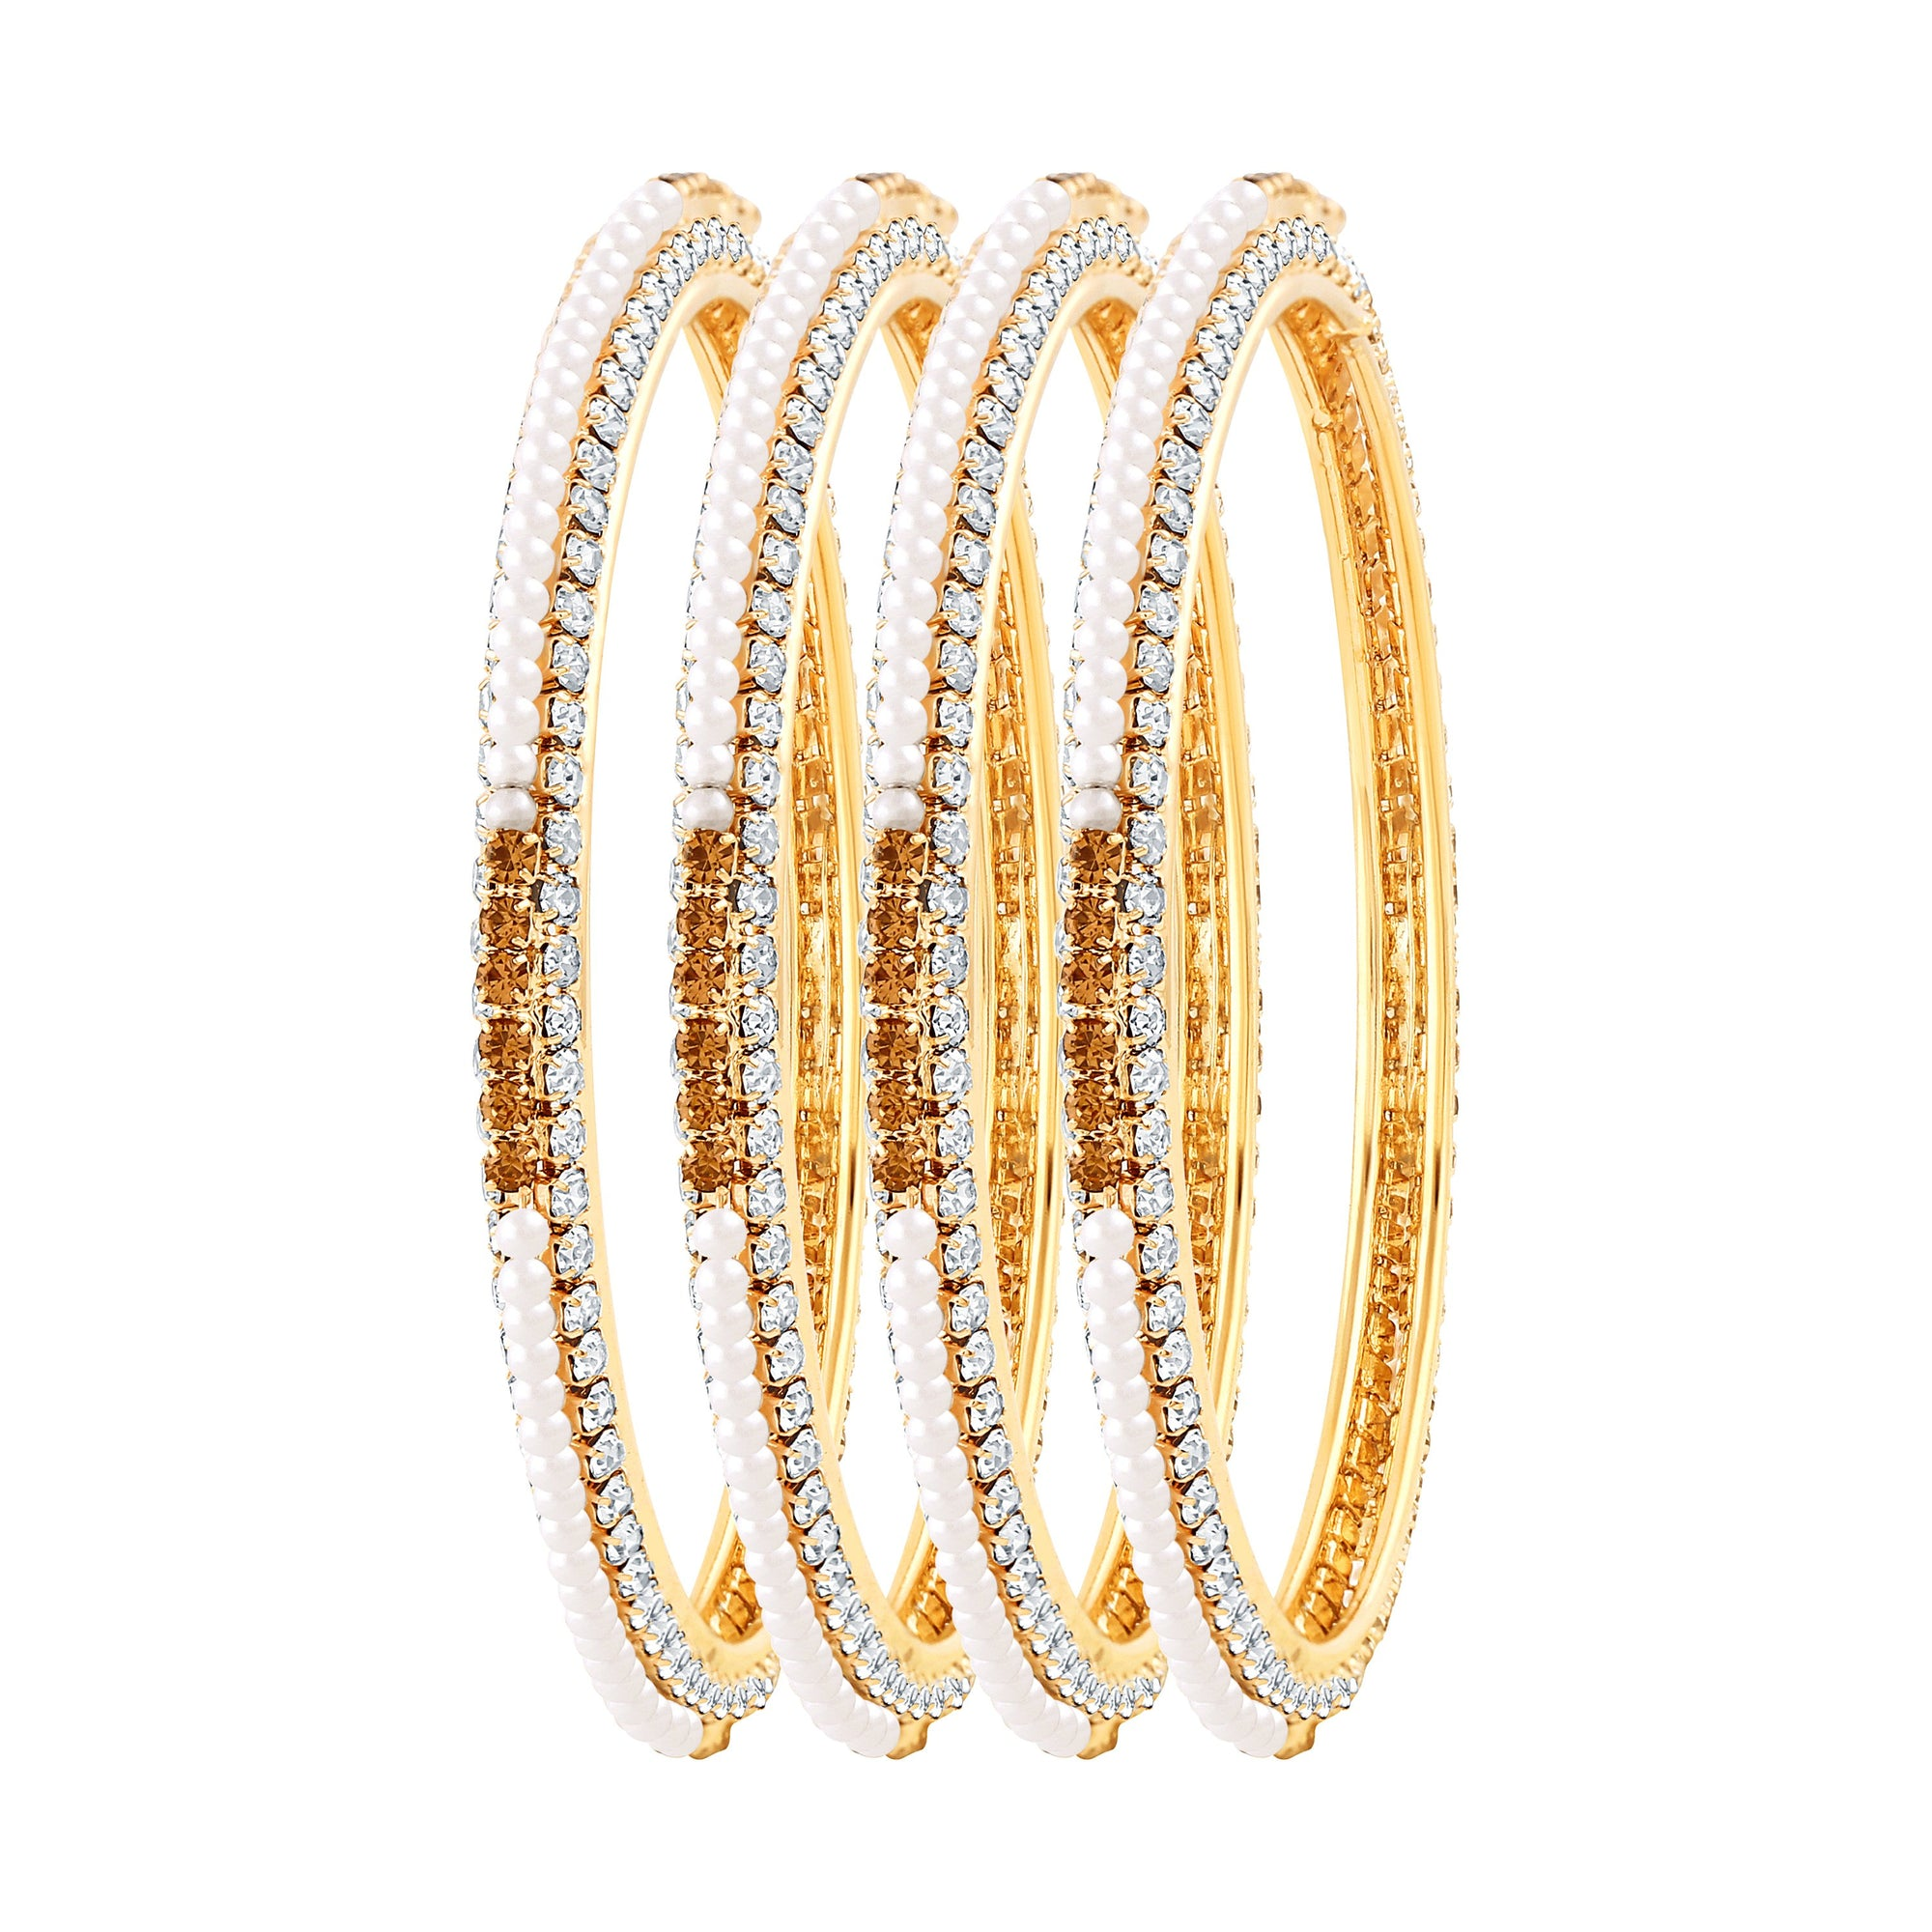 Asmitta Jewellery Beaded Gold  Set Of 4 Bangles  -BG140